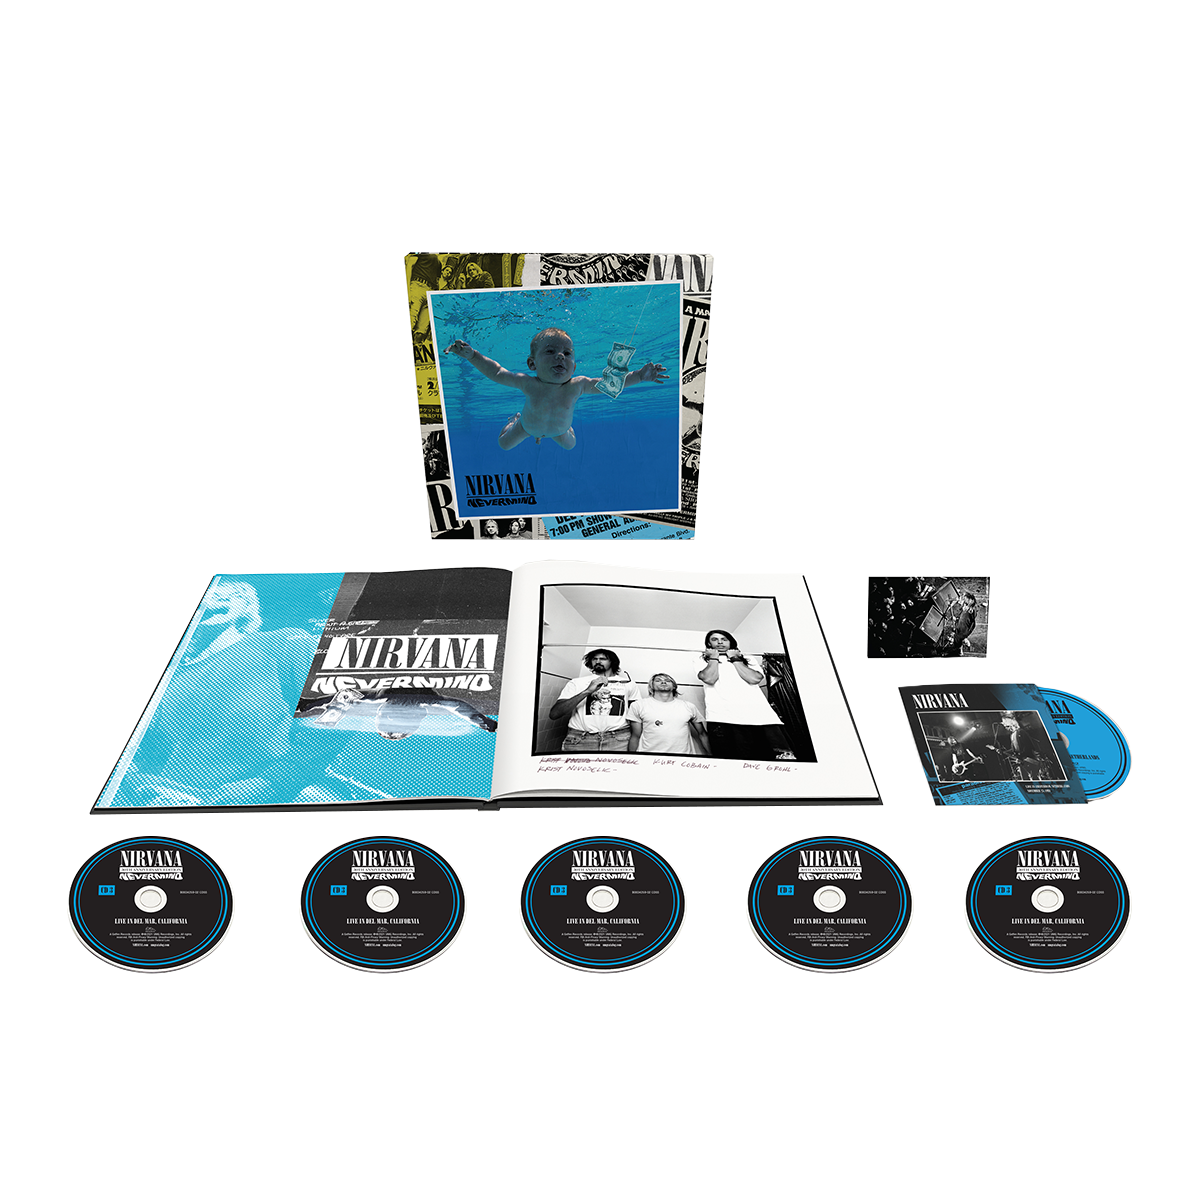 Nirvana - Nevermind 30th Anniversary Edition 5CD + Blu Ray + 40 Page Booklet